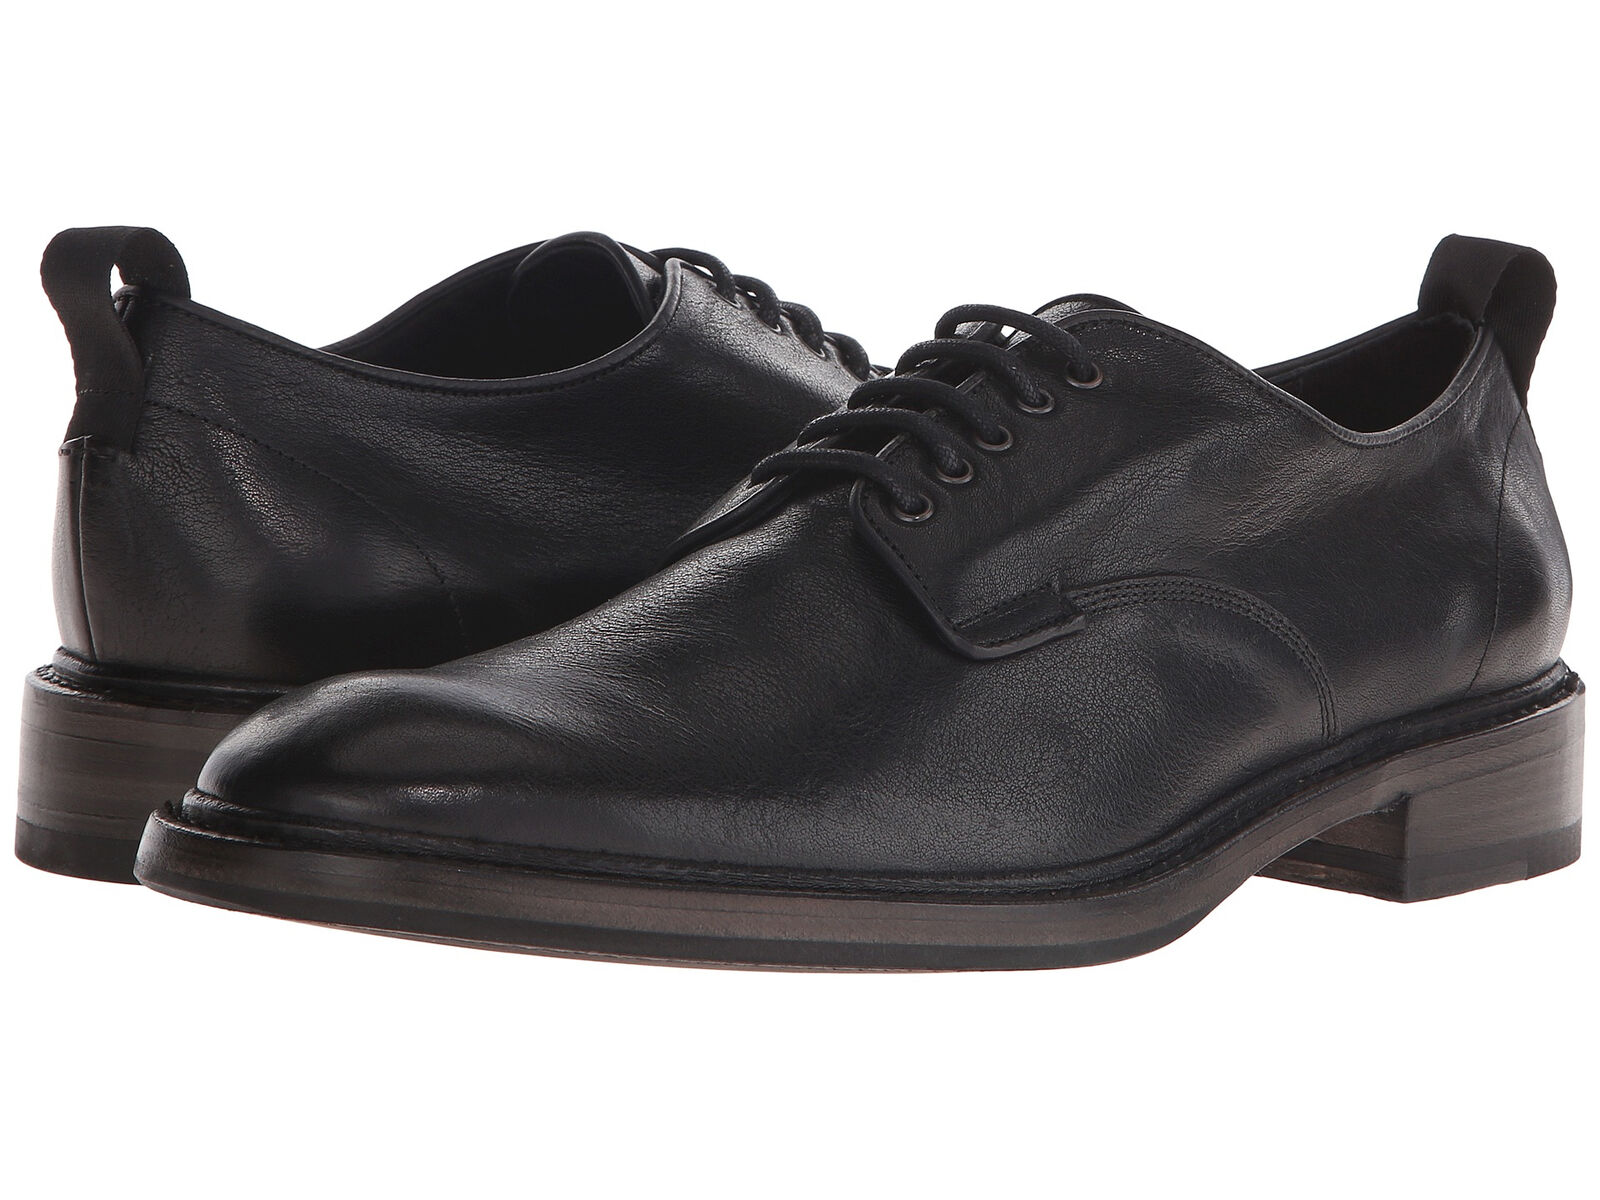 Straccio & Ossa Uomo Nero pelle Spencer Derby Oxford